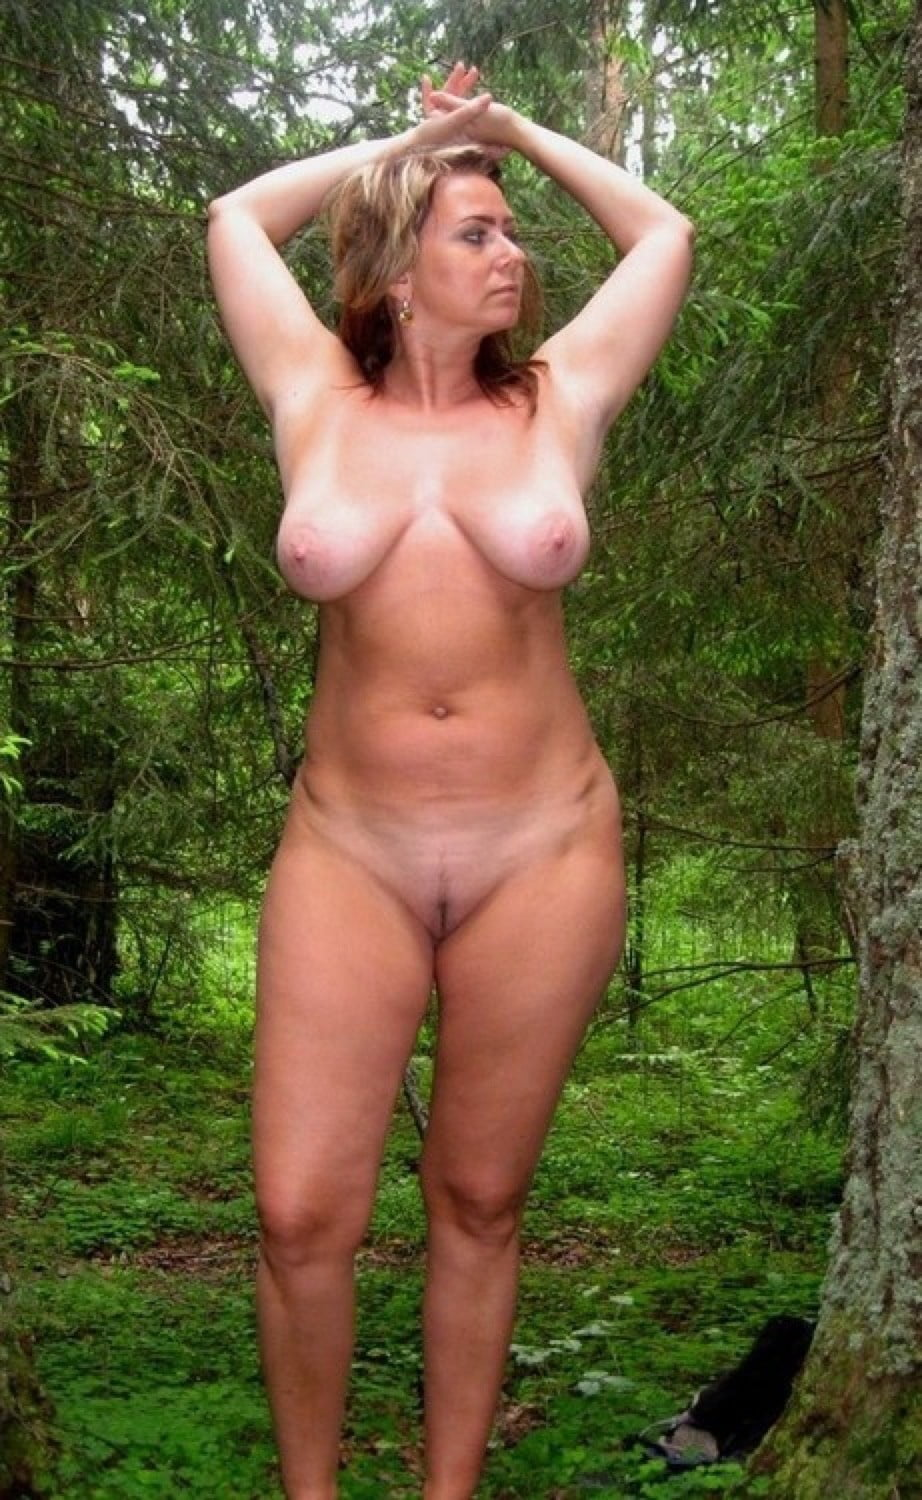 Nude Ass In The Nature